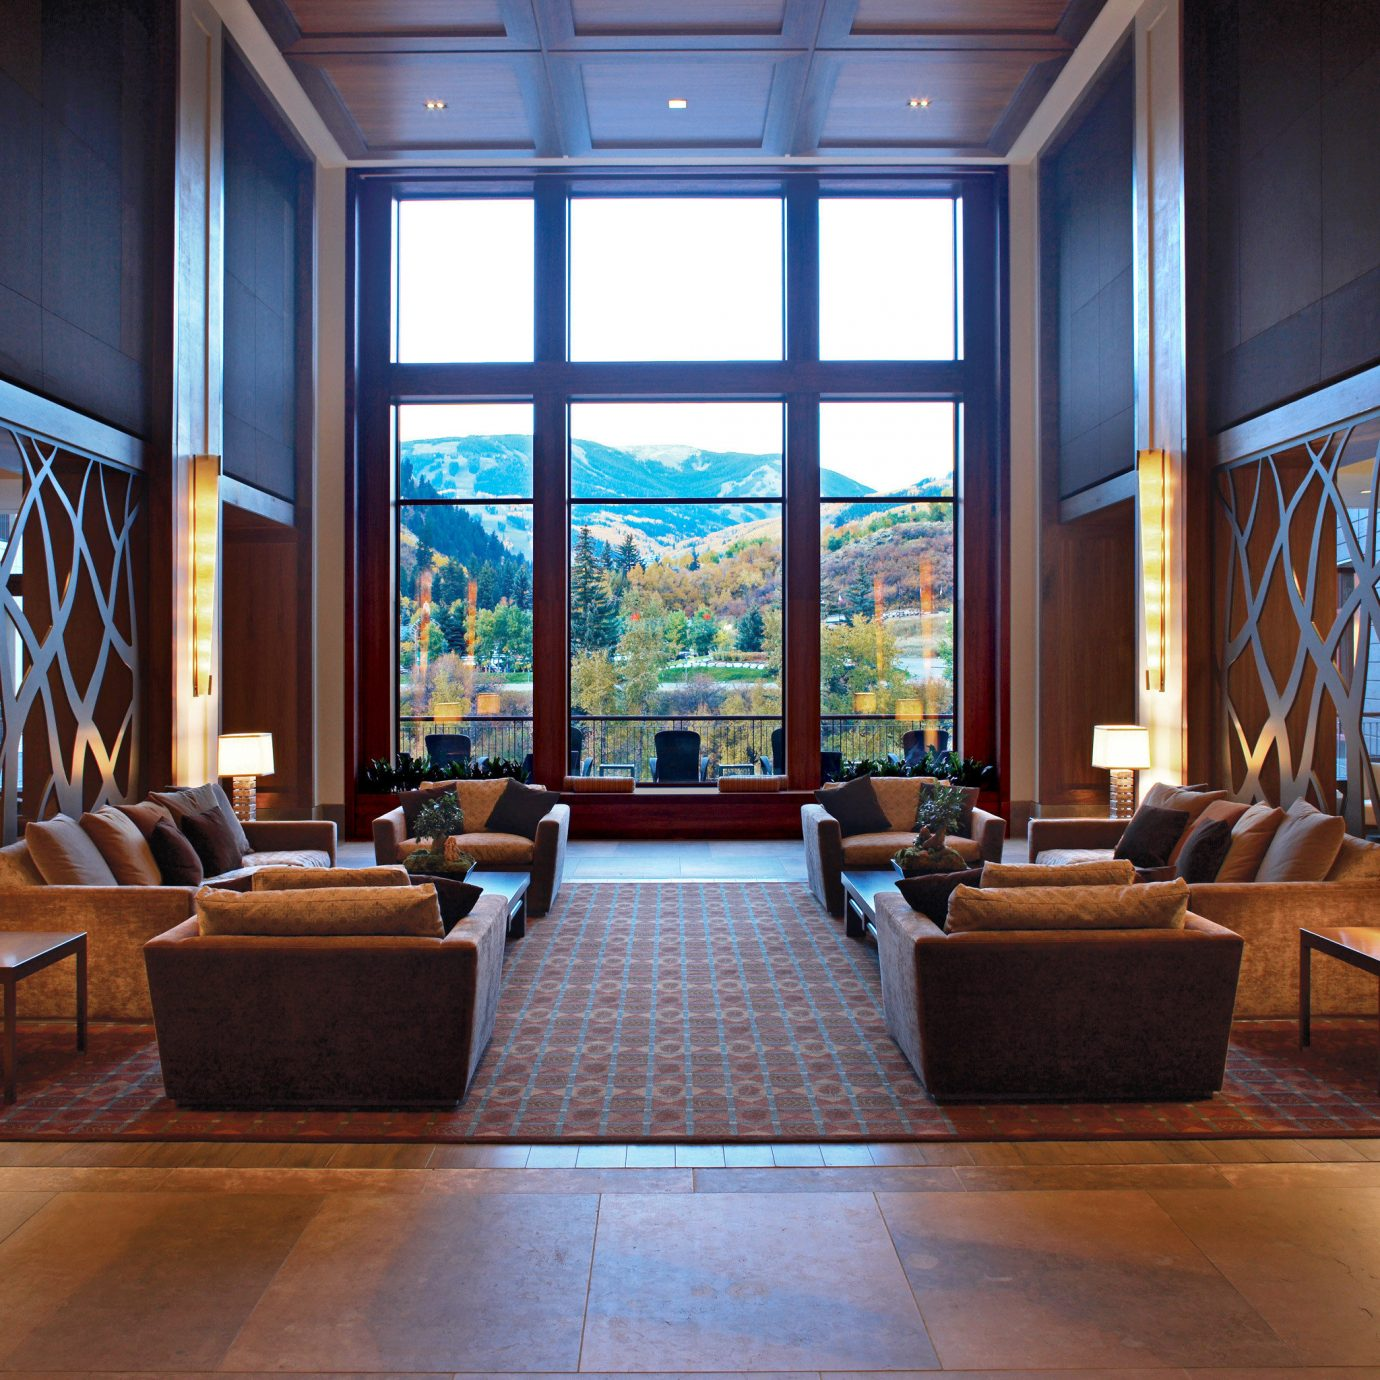 Lounge Resort Scenic views Lobby property living room home mansion hall